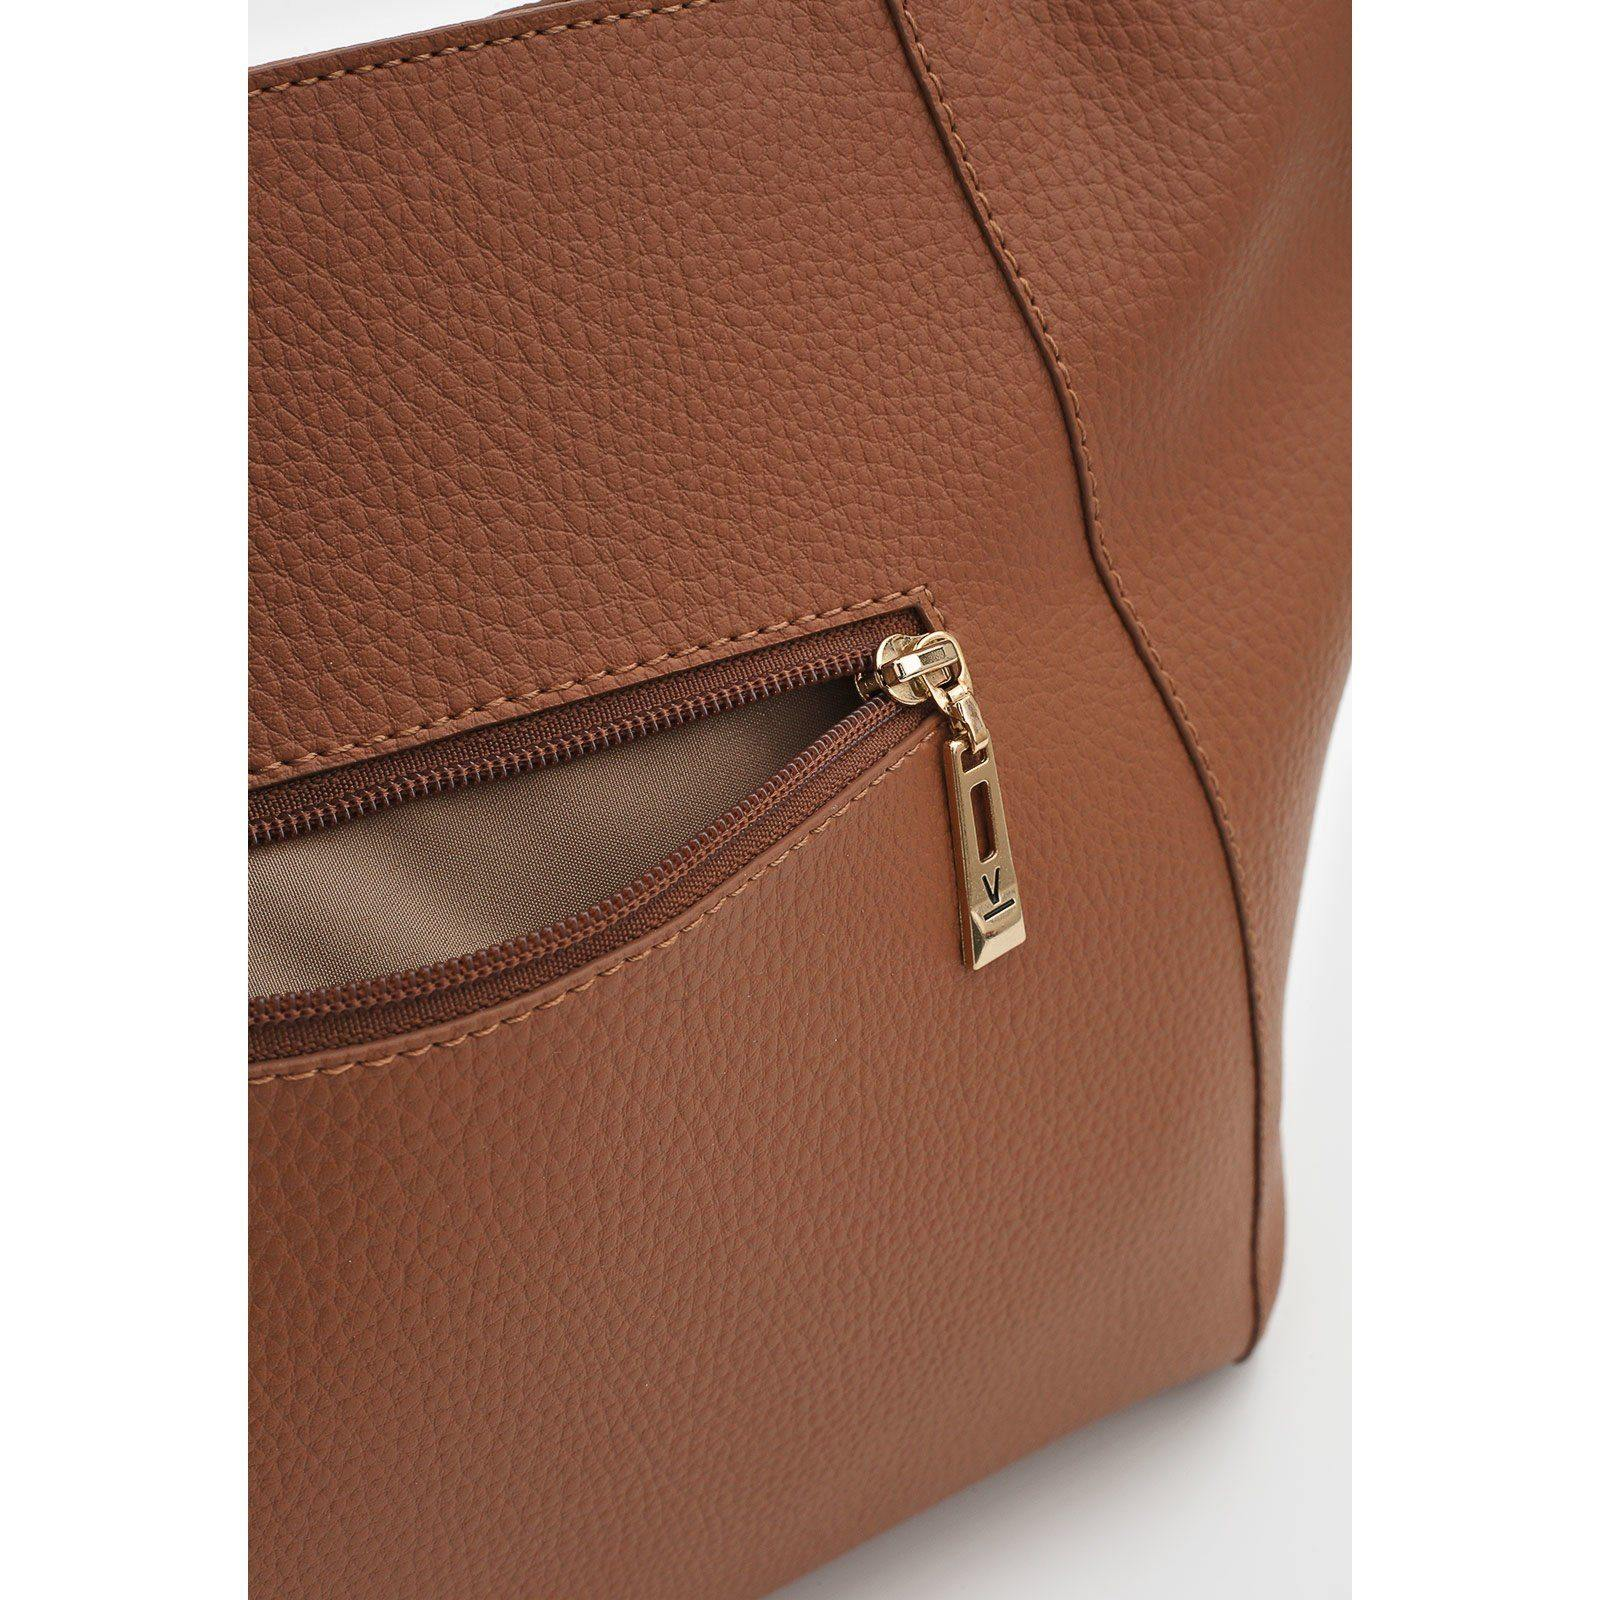 Vizzano 10004-1 Shoulder Bag in Camel